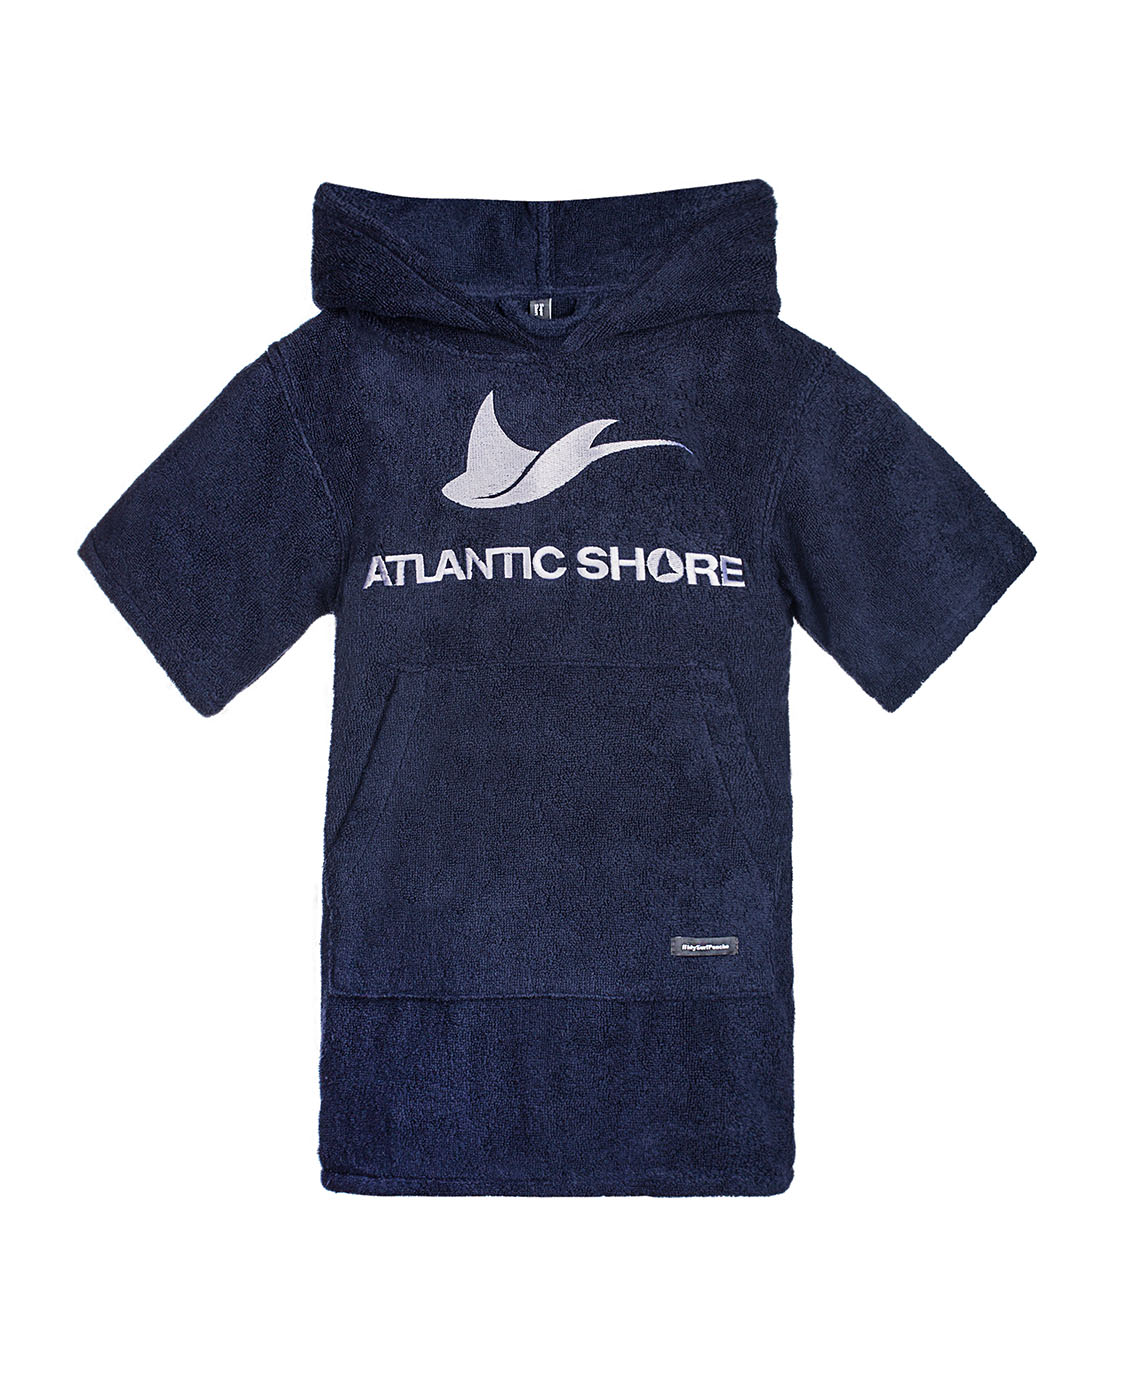 Atlantic Shore | Surf Poncho | Basic | Kids | Navy Blue